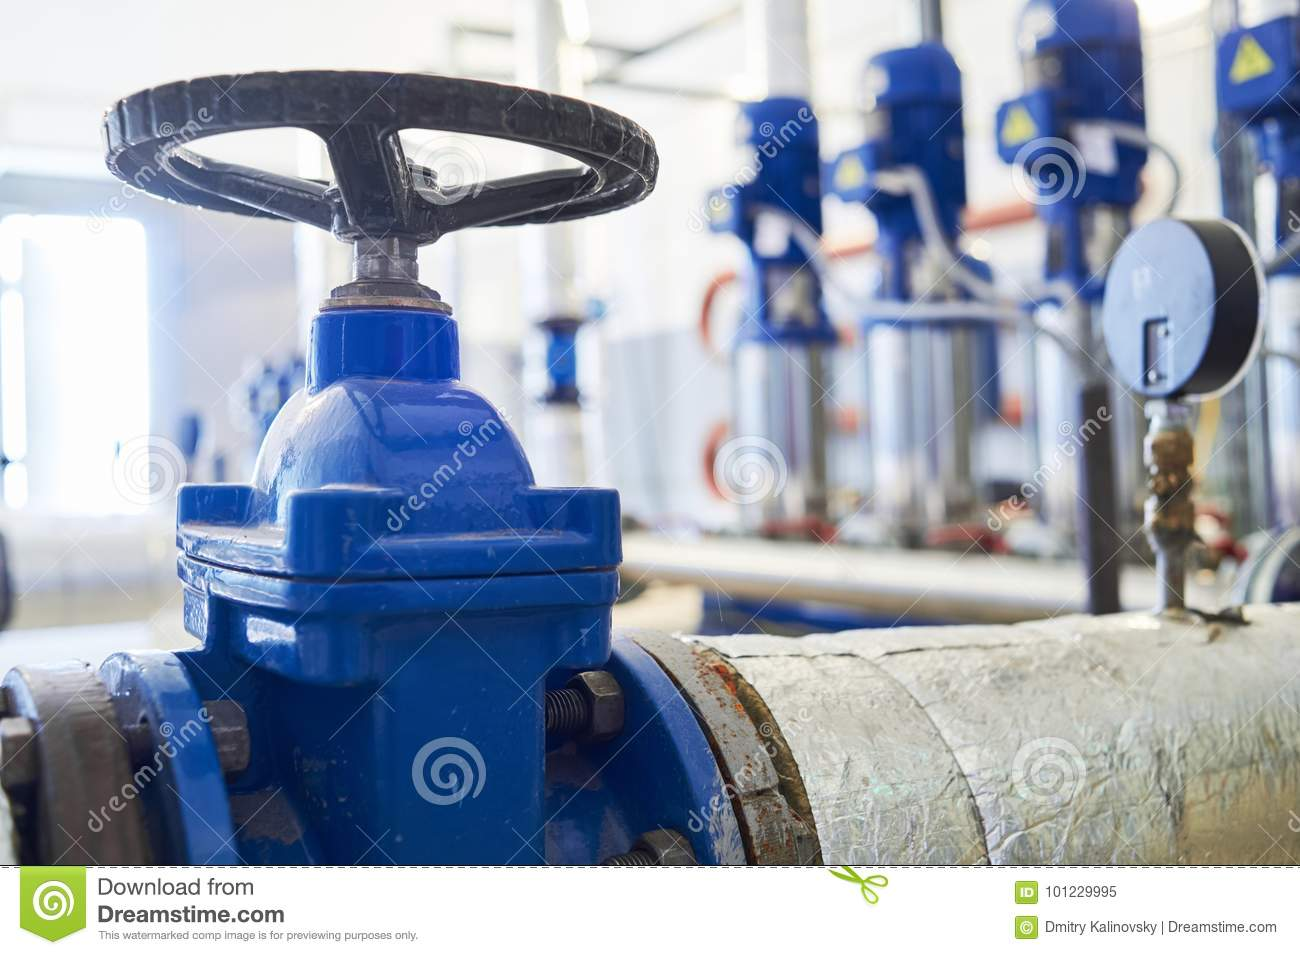 https www dreamstime com industrial water pumping system valve insulated pipe front water pump room water pumping station valve faucet pumps image101229995